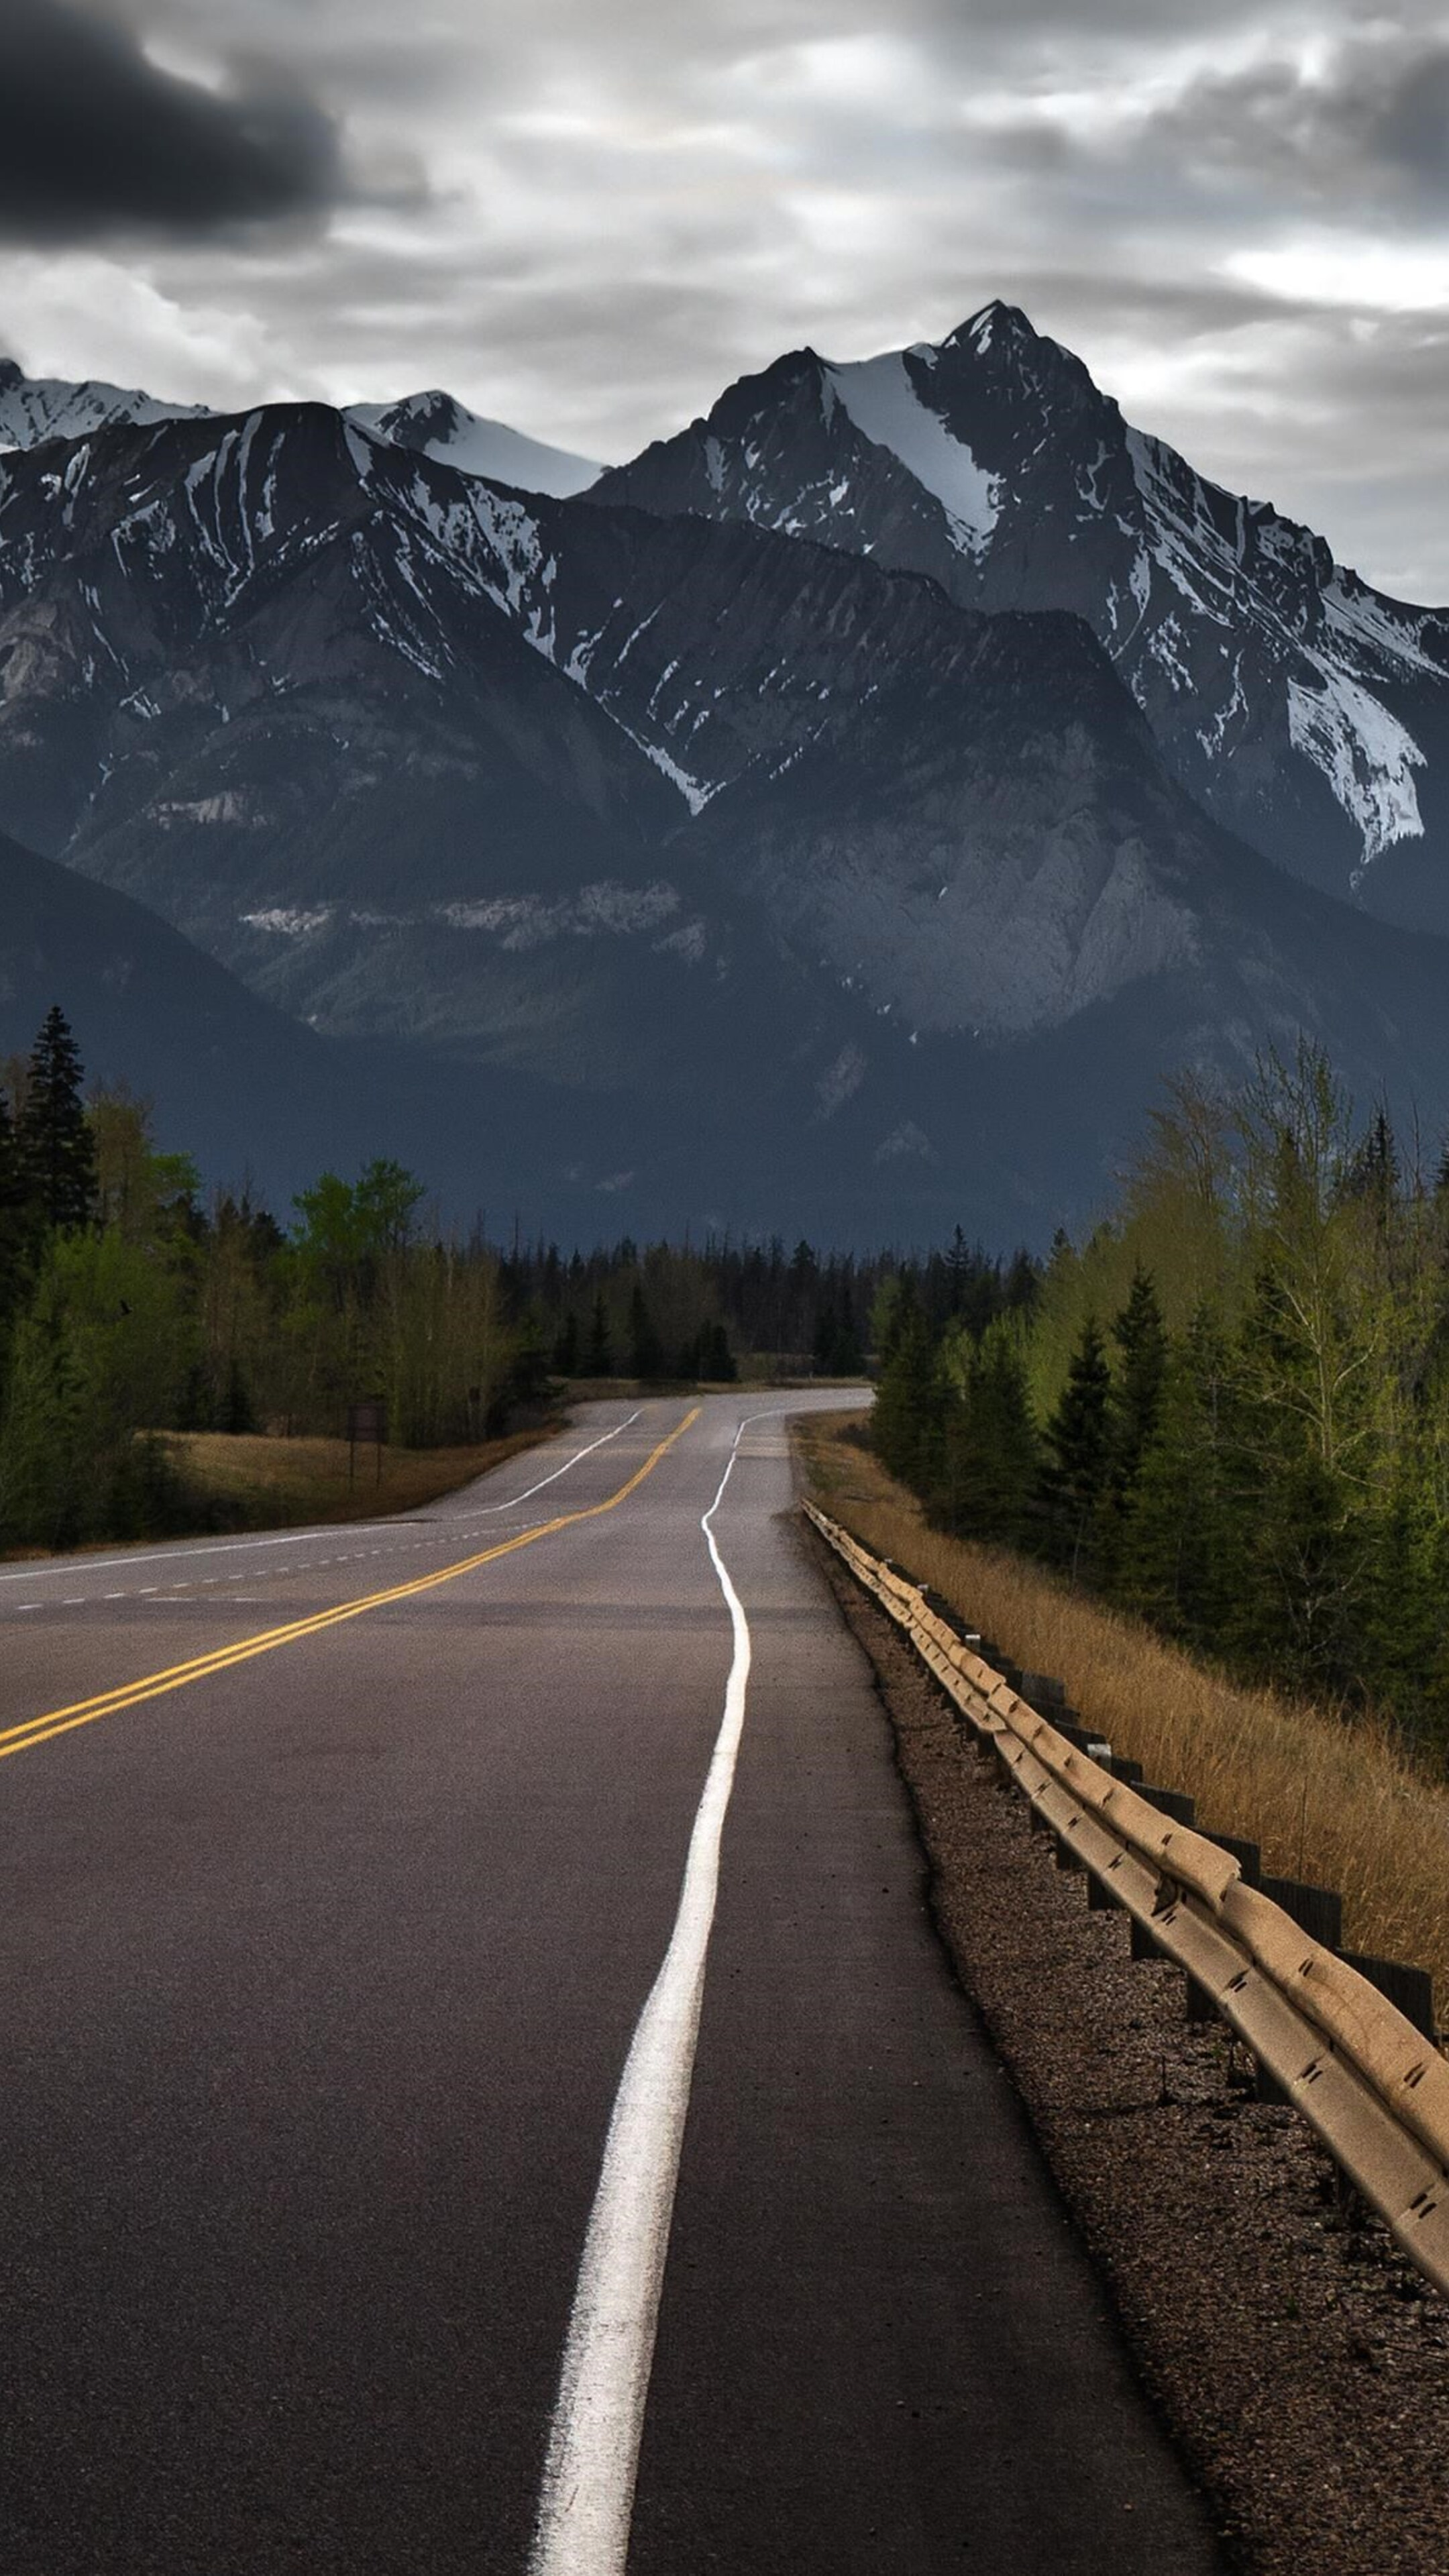 road-to-mountains-hd.jpg